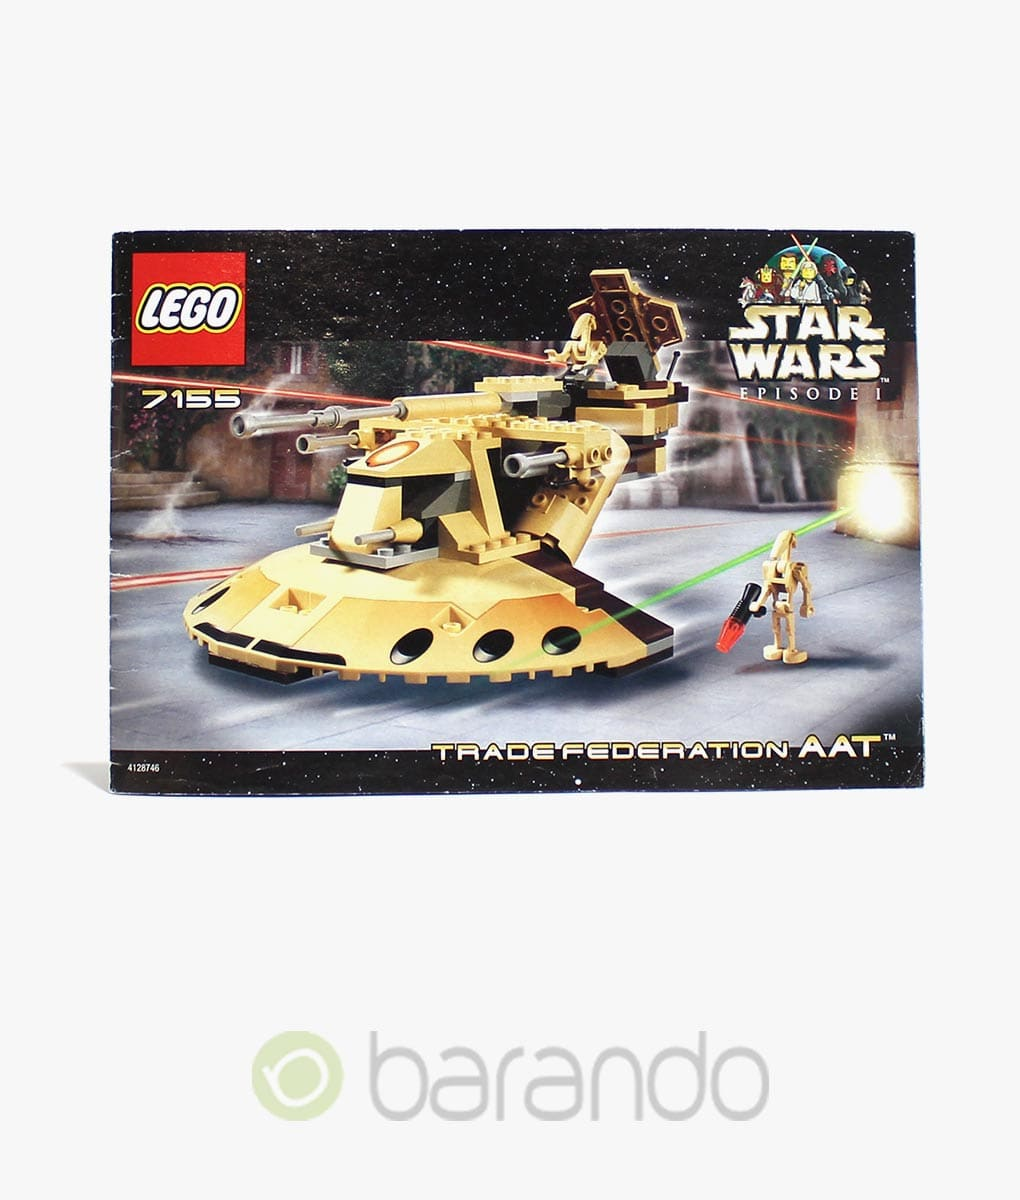 LEGO Star Wars 7155 Trade Federation Set kaufen